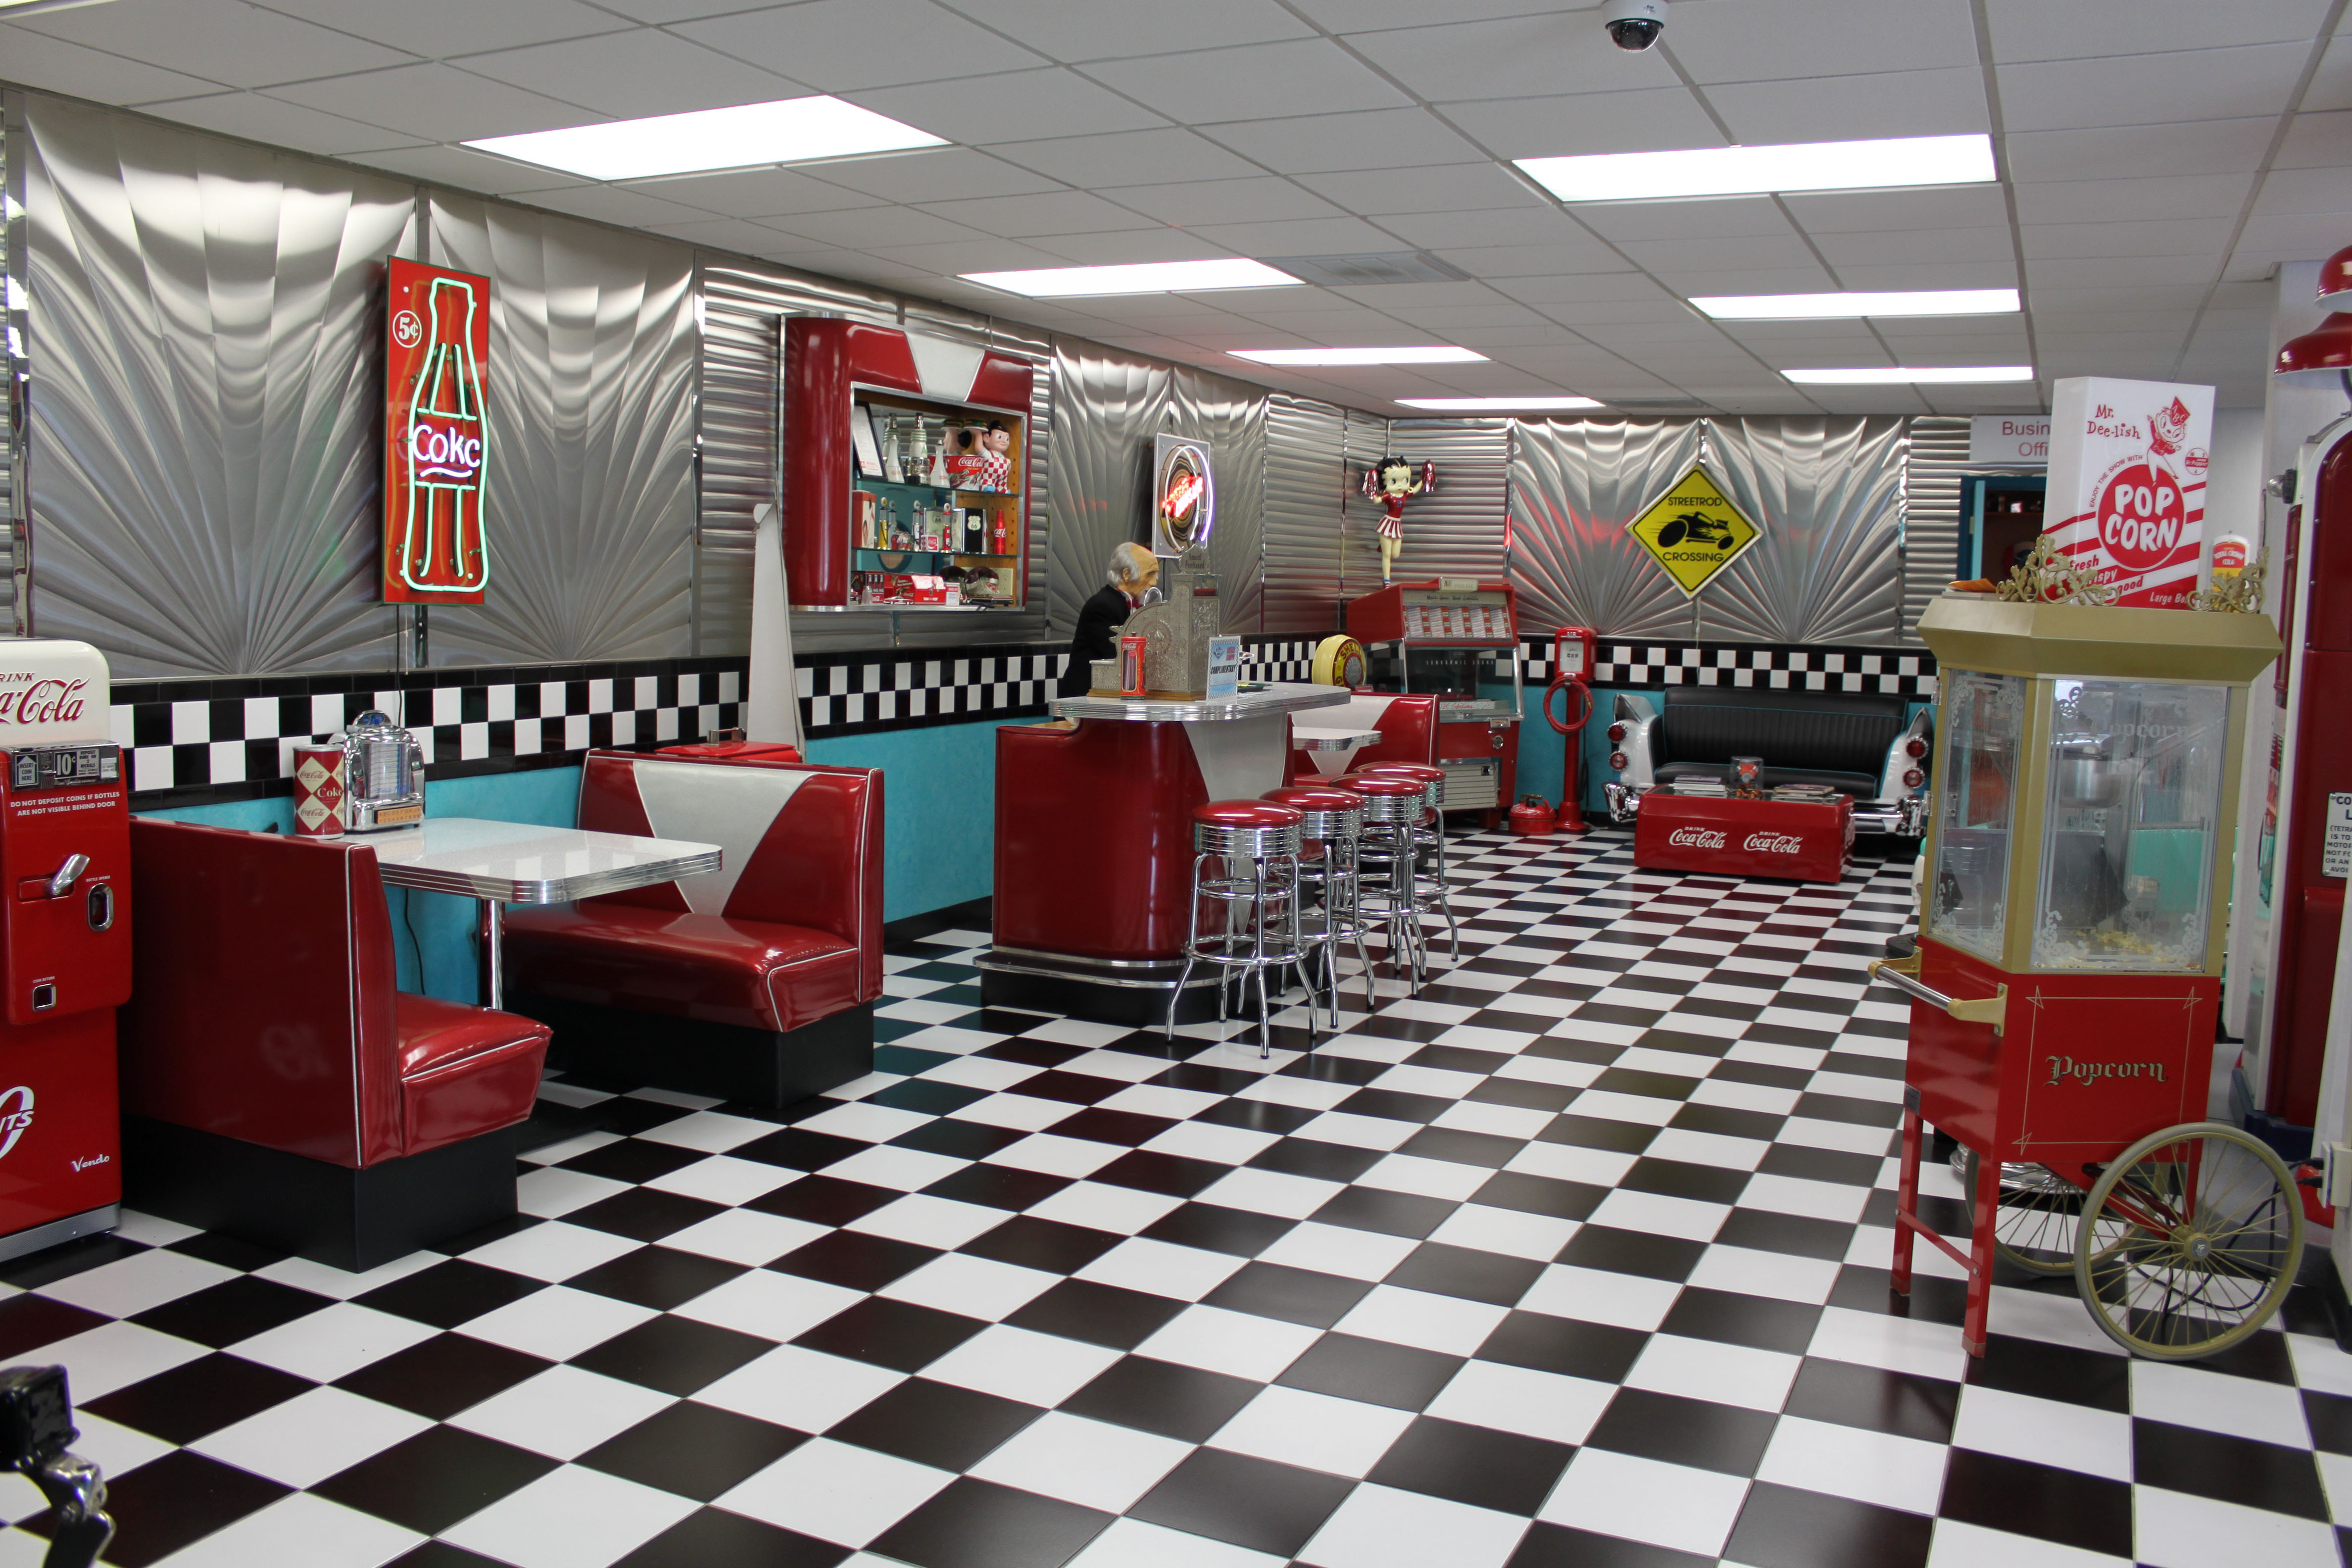 688453 Title Man Made Room Retro Table Chair Wallpaper 50s Diner Background 4752x3168 Download Hd Wallpaper Wallpapertip